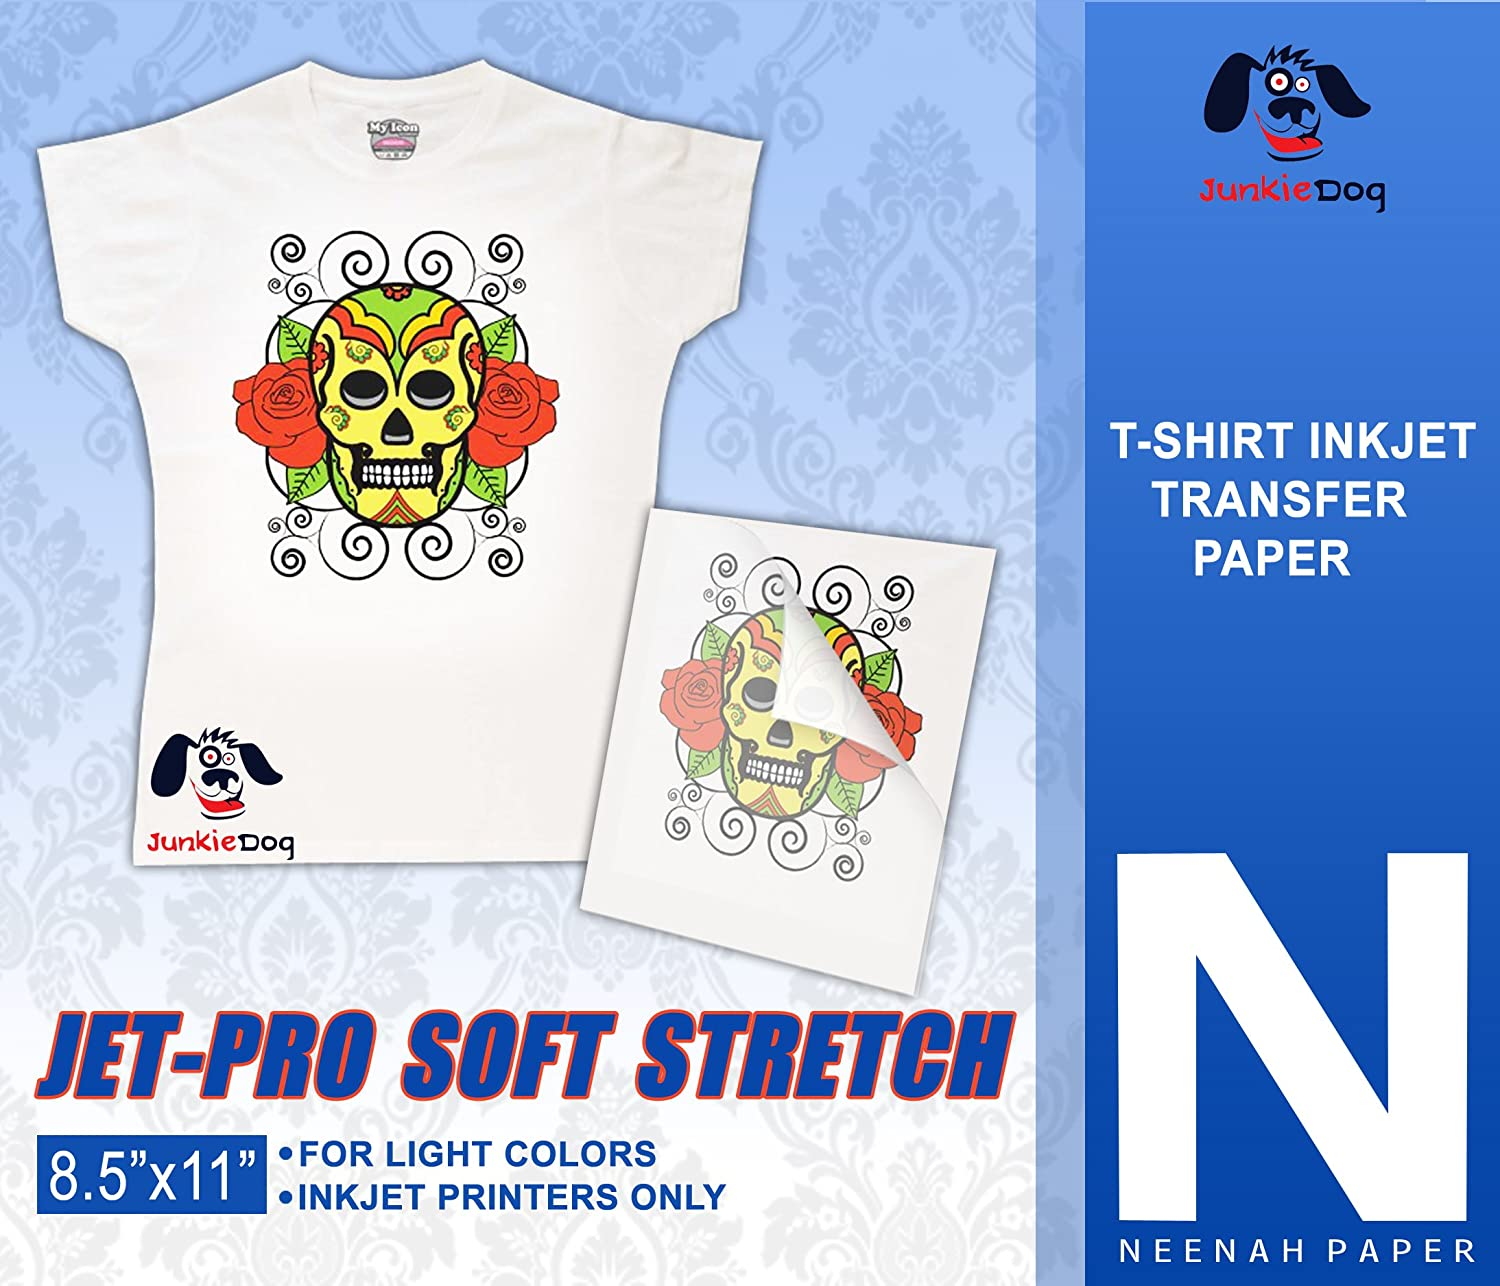 Amazon Jet Pross Jetpro Sofstretch Heat Transfer Paper 85 X